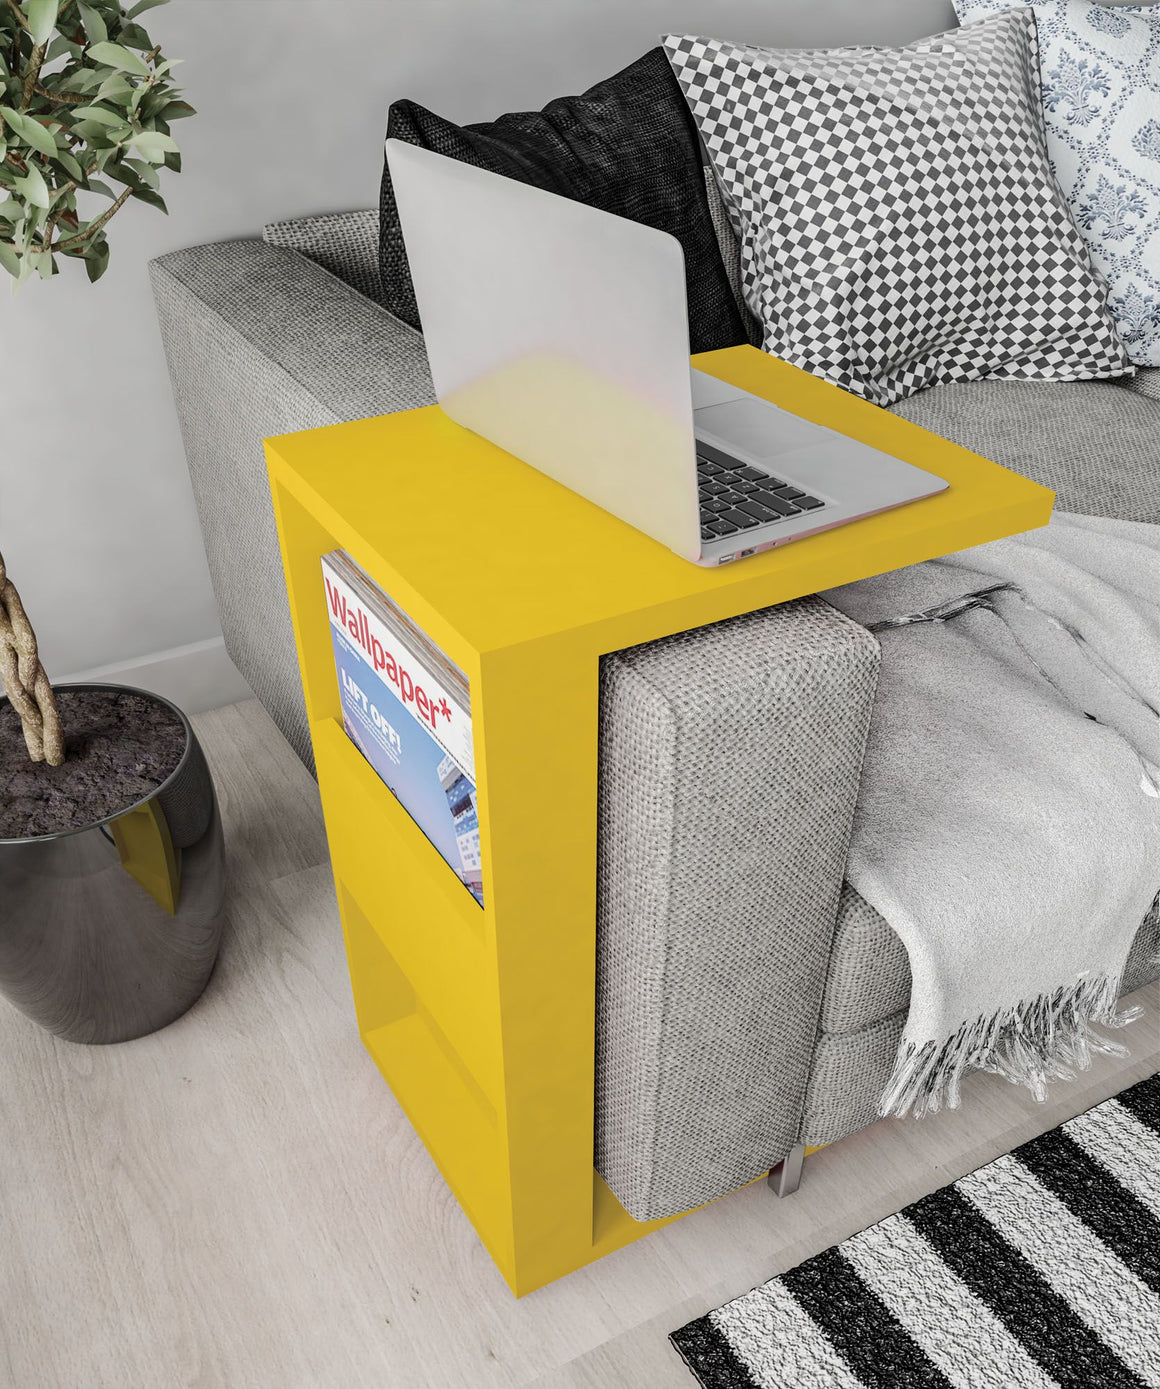 Marine Modern End Table with Magazine Shelf in Yellow